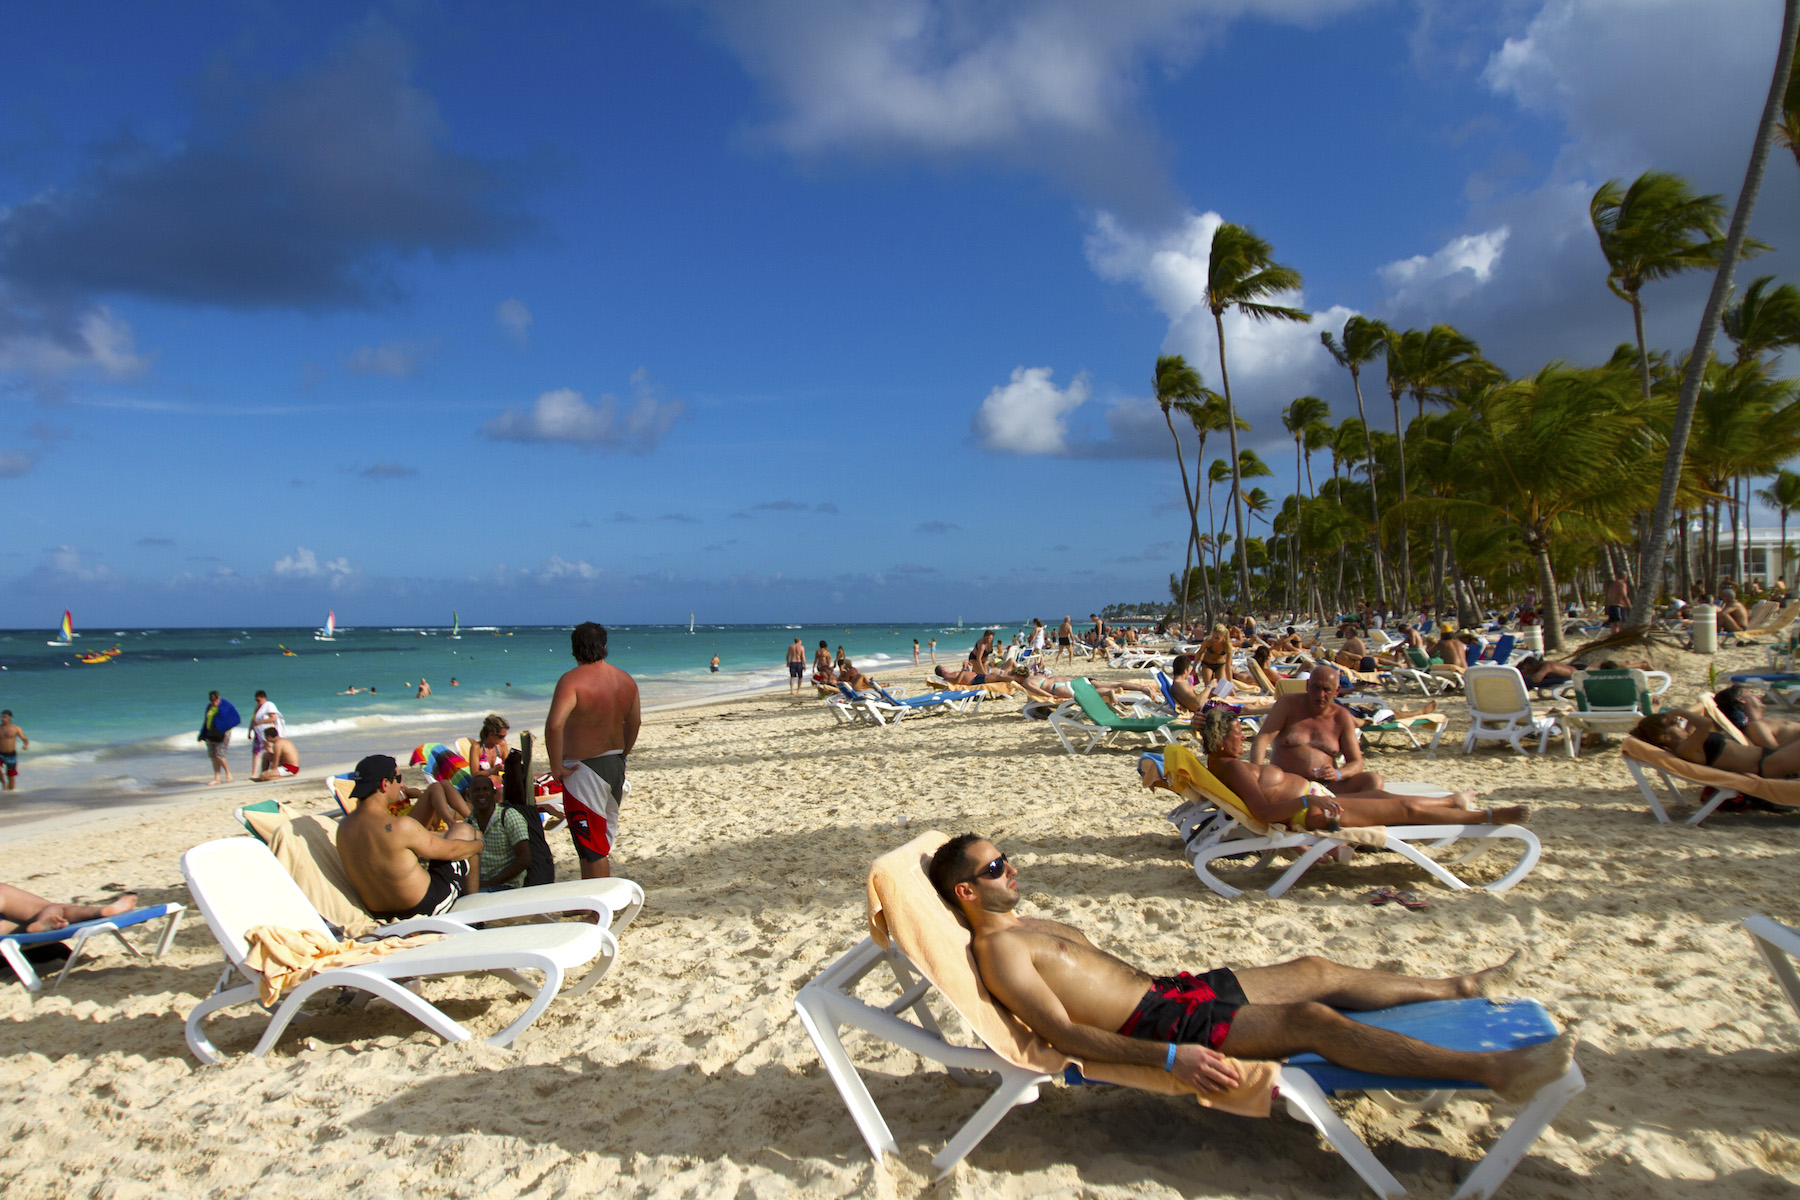 Report: Counterfeit Alcohol Eyed as Cause of American Tourist Deaths in Dominican Republic